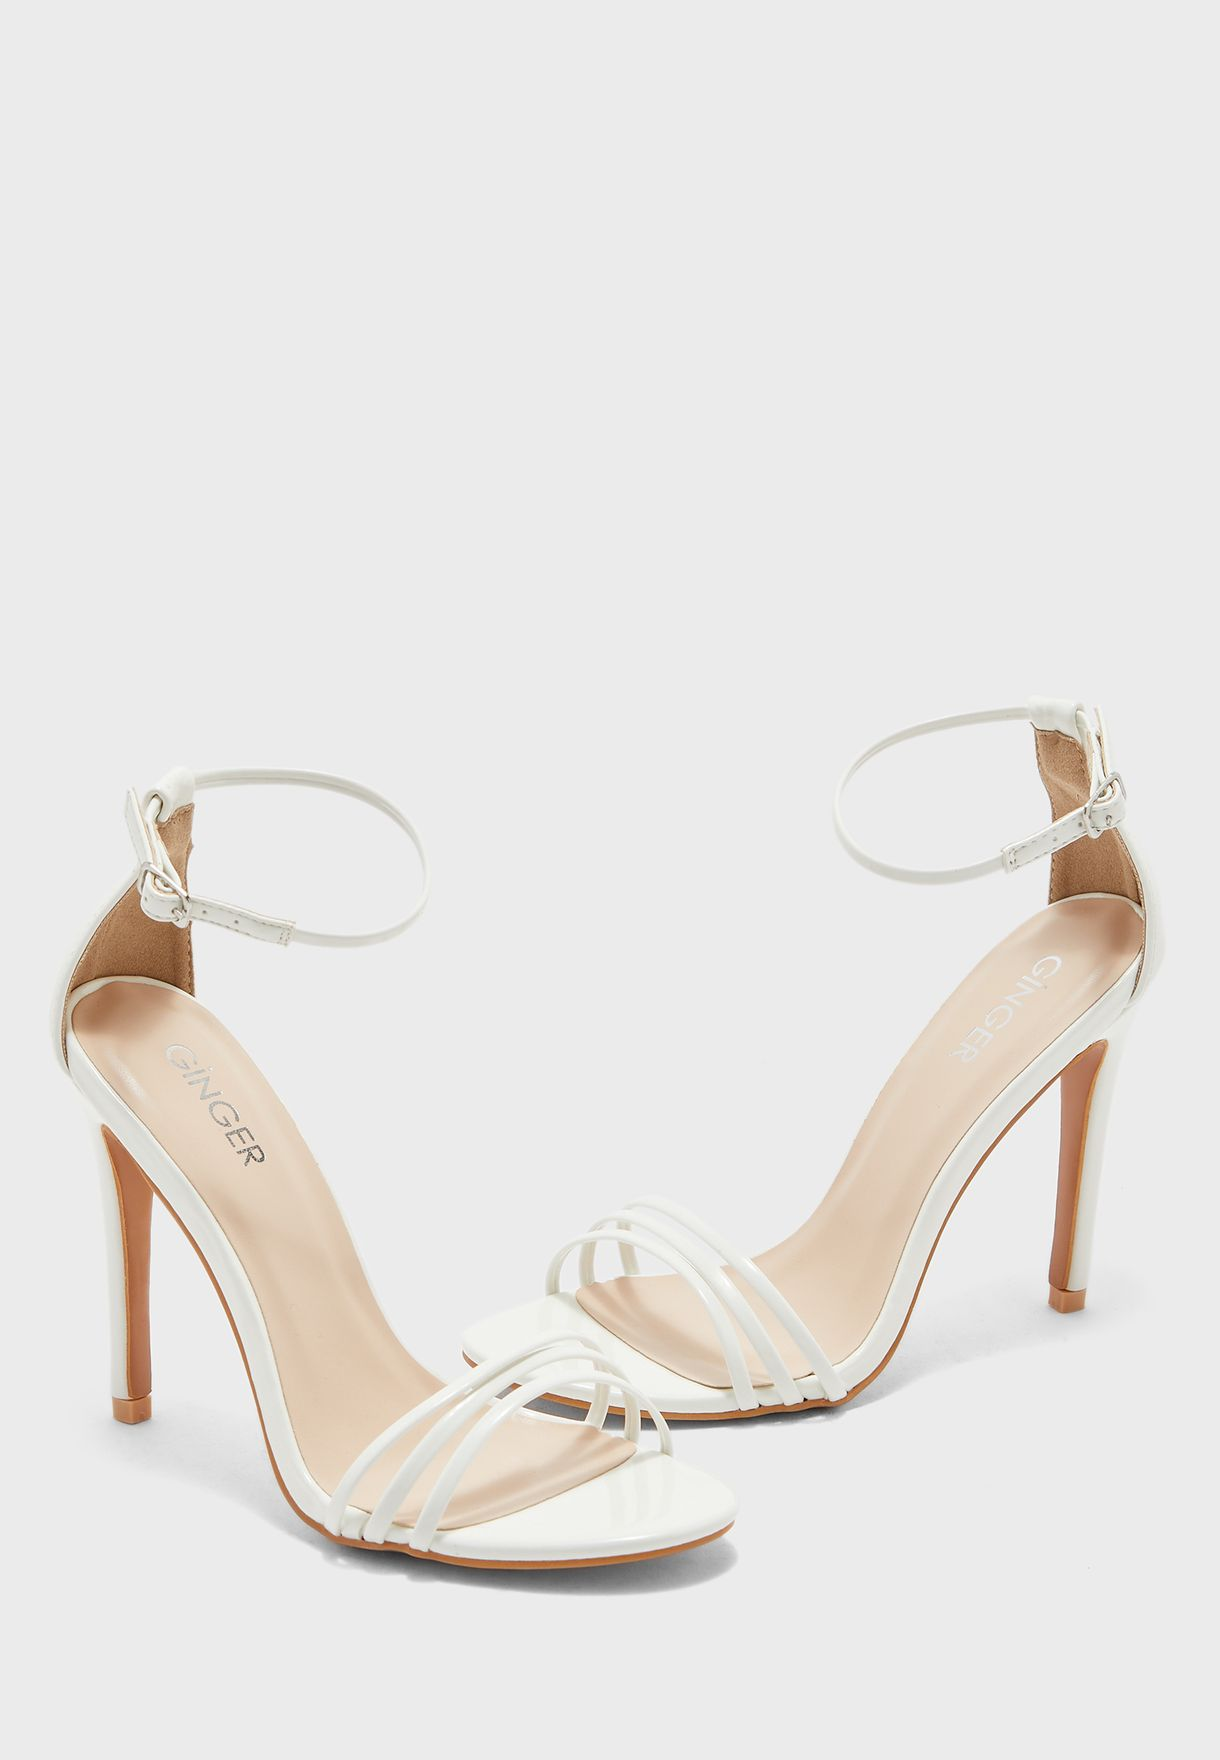 Strappy Barely There Sandal